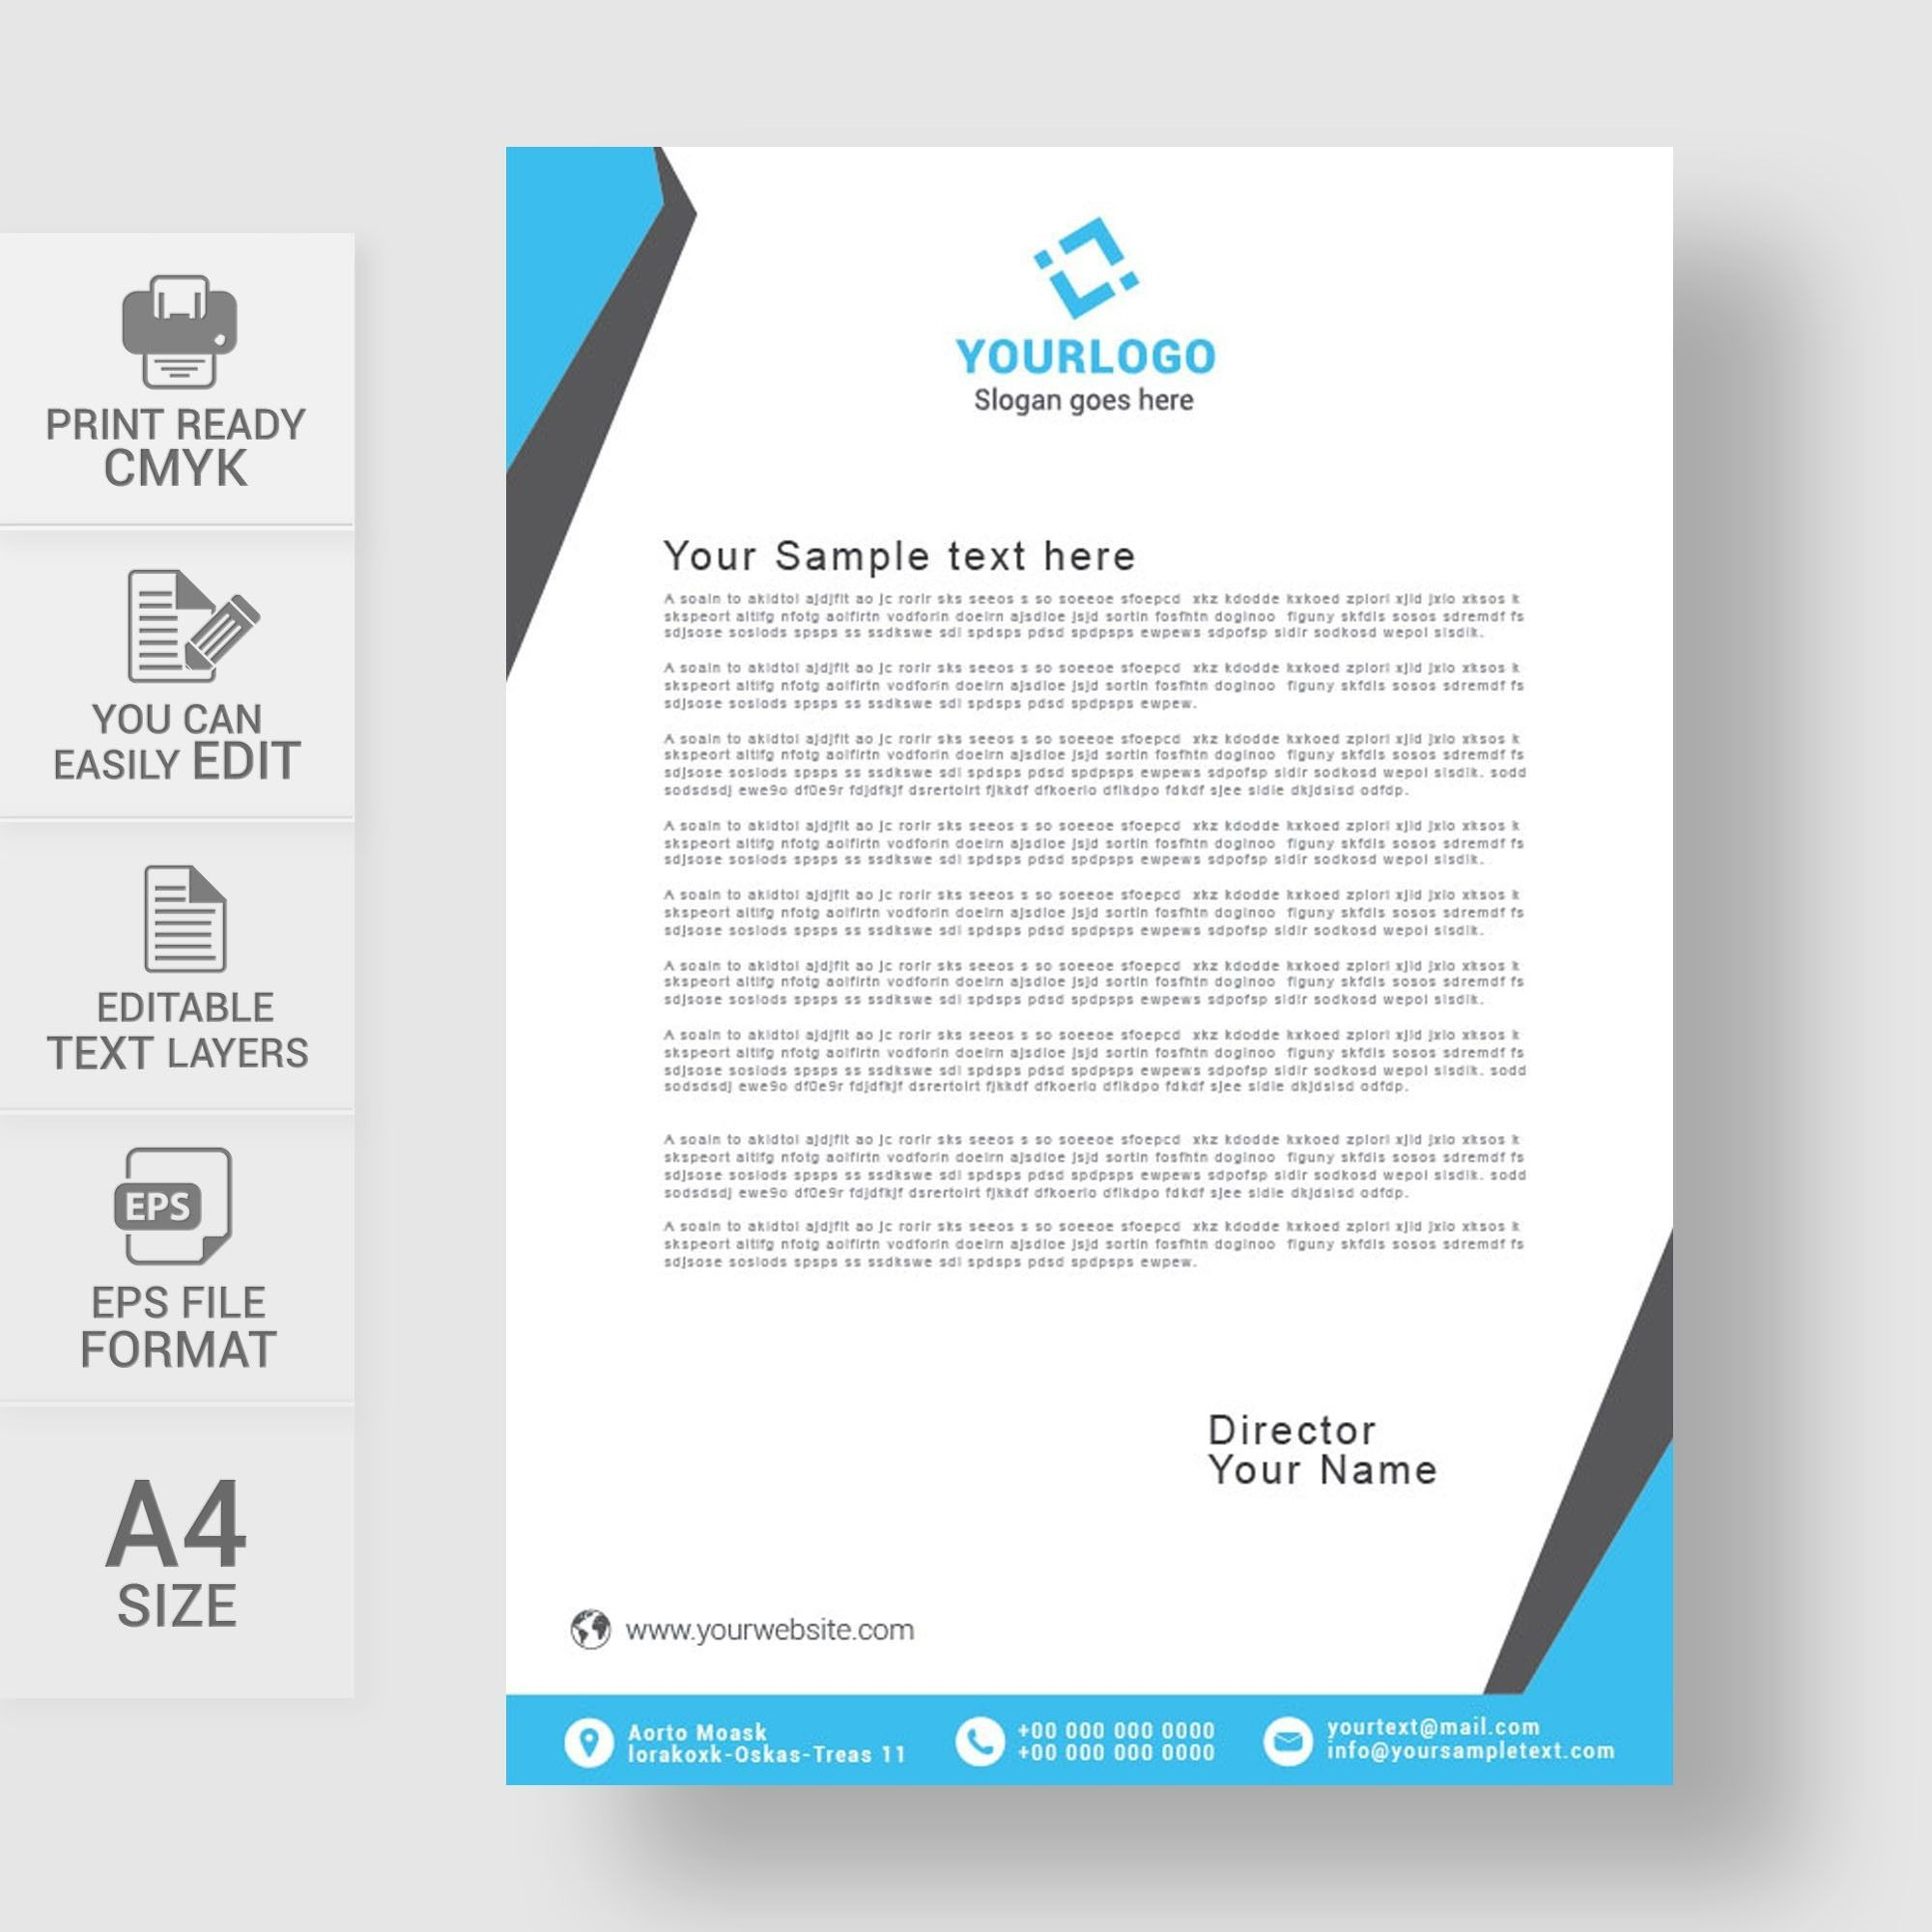 View 22+] Business Letterhead Company Letterhead Template Word Free Regarding How To Create A Letterhead Template In Word